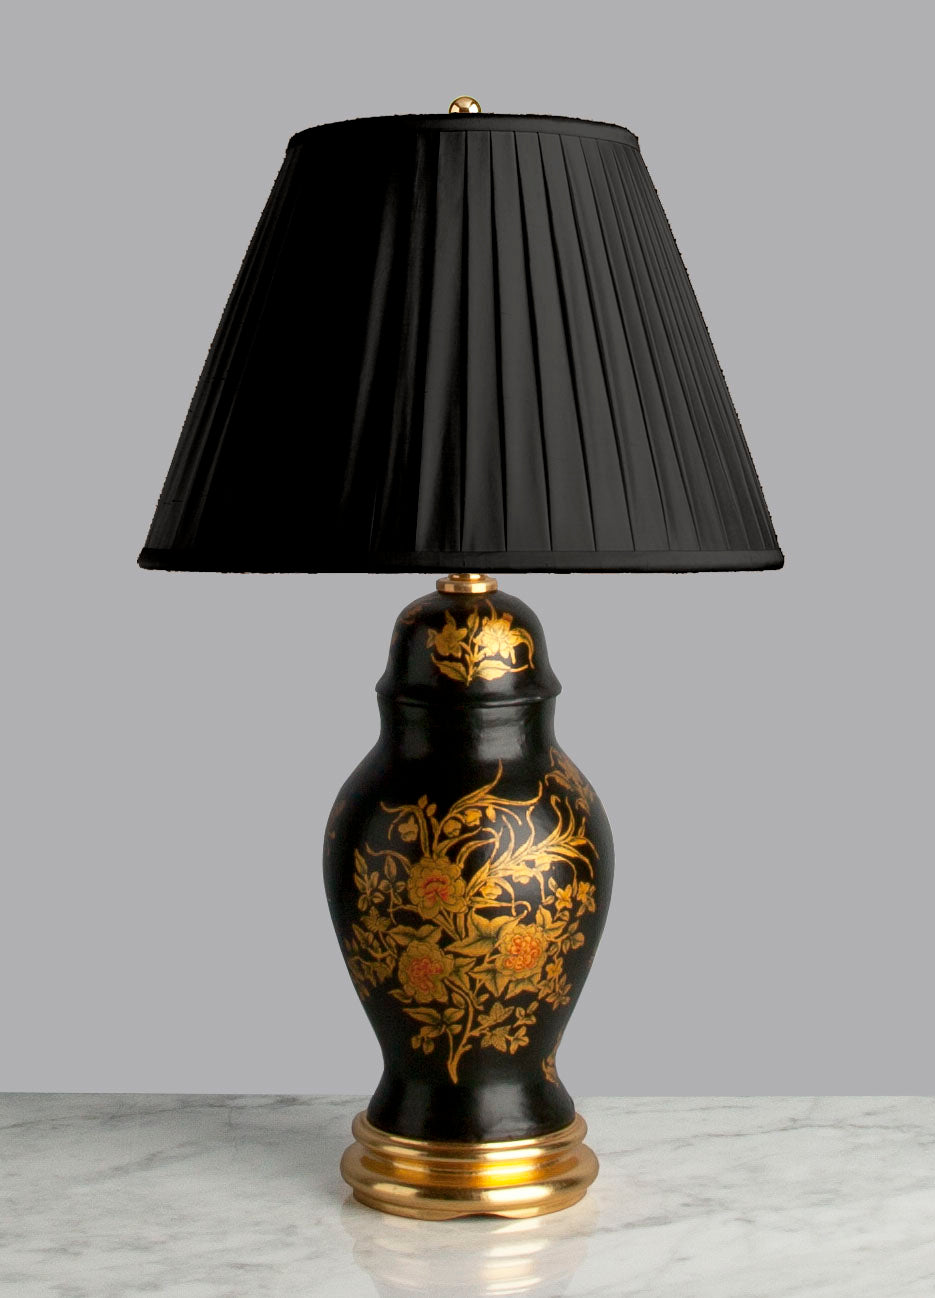 A081 A Rare English Edwardian Era Papier-Mâché  Accent Lamp - Circa 1910